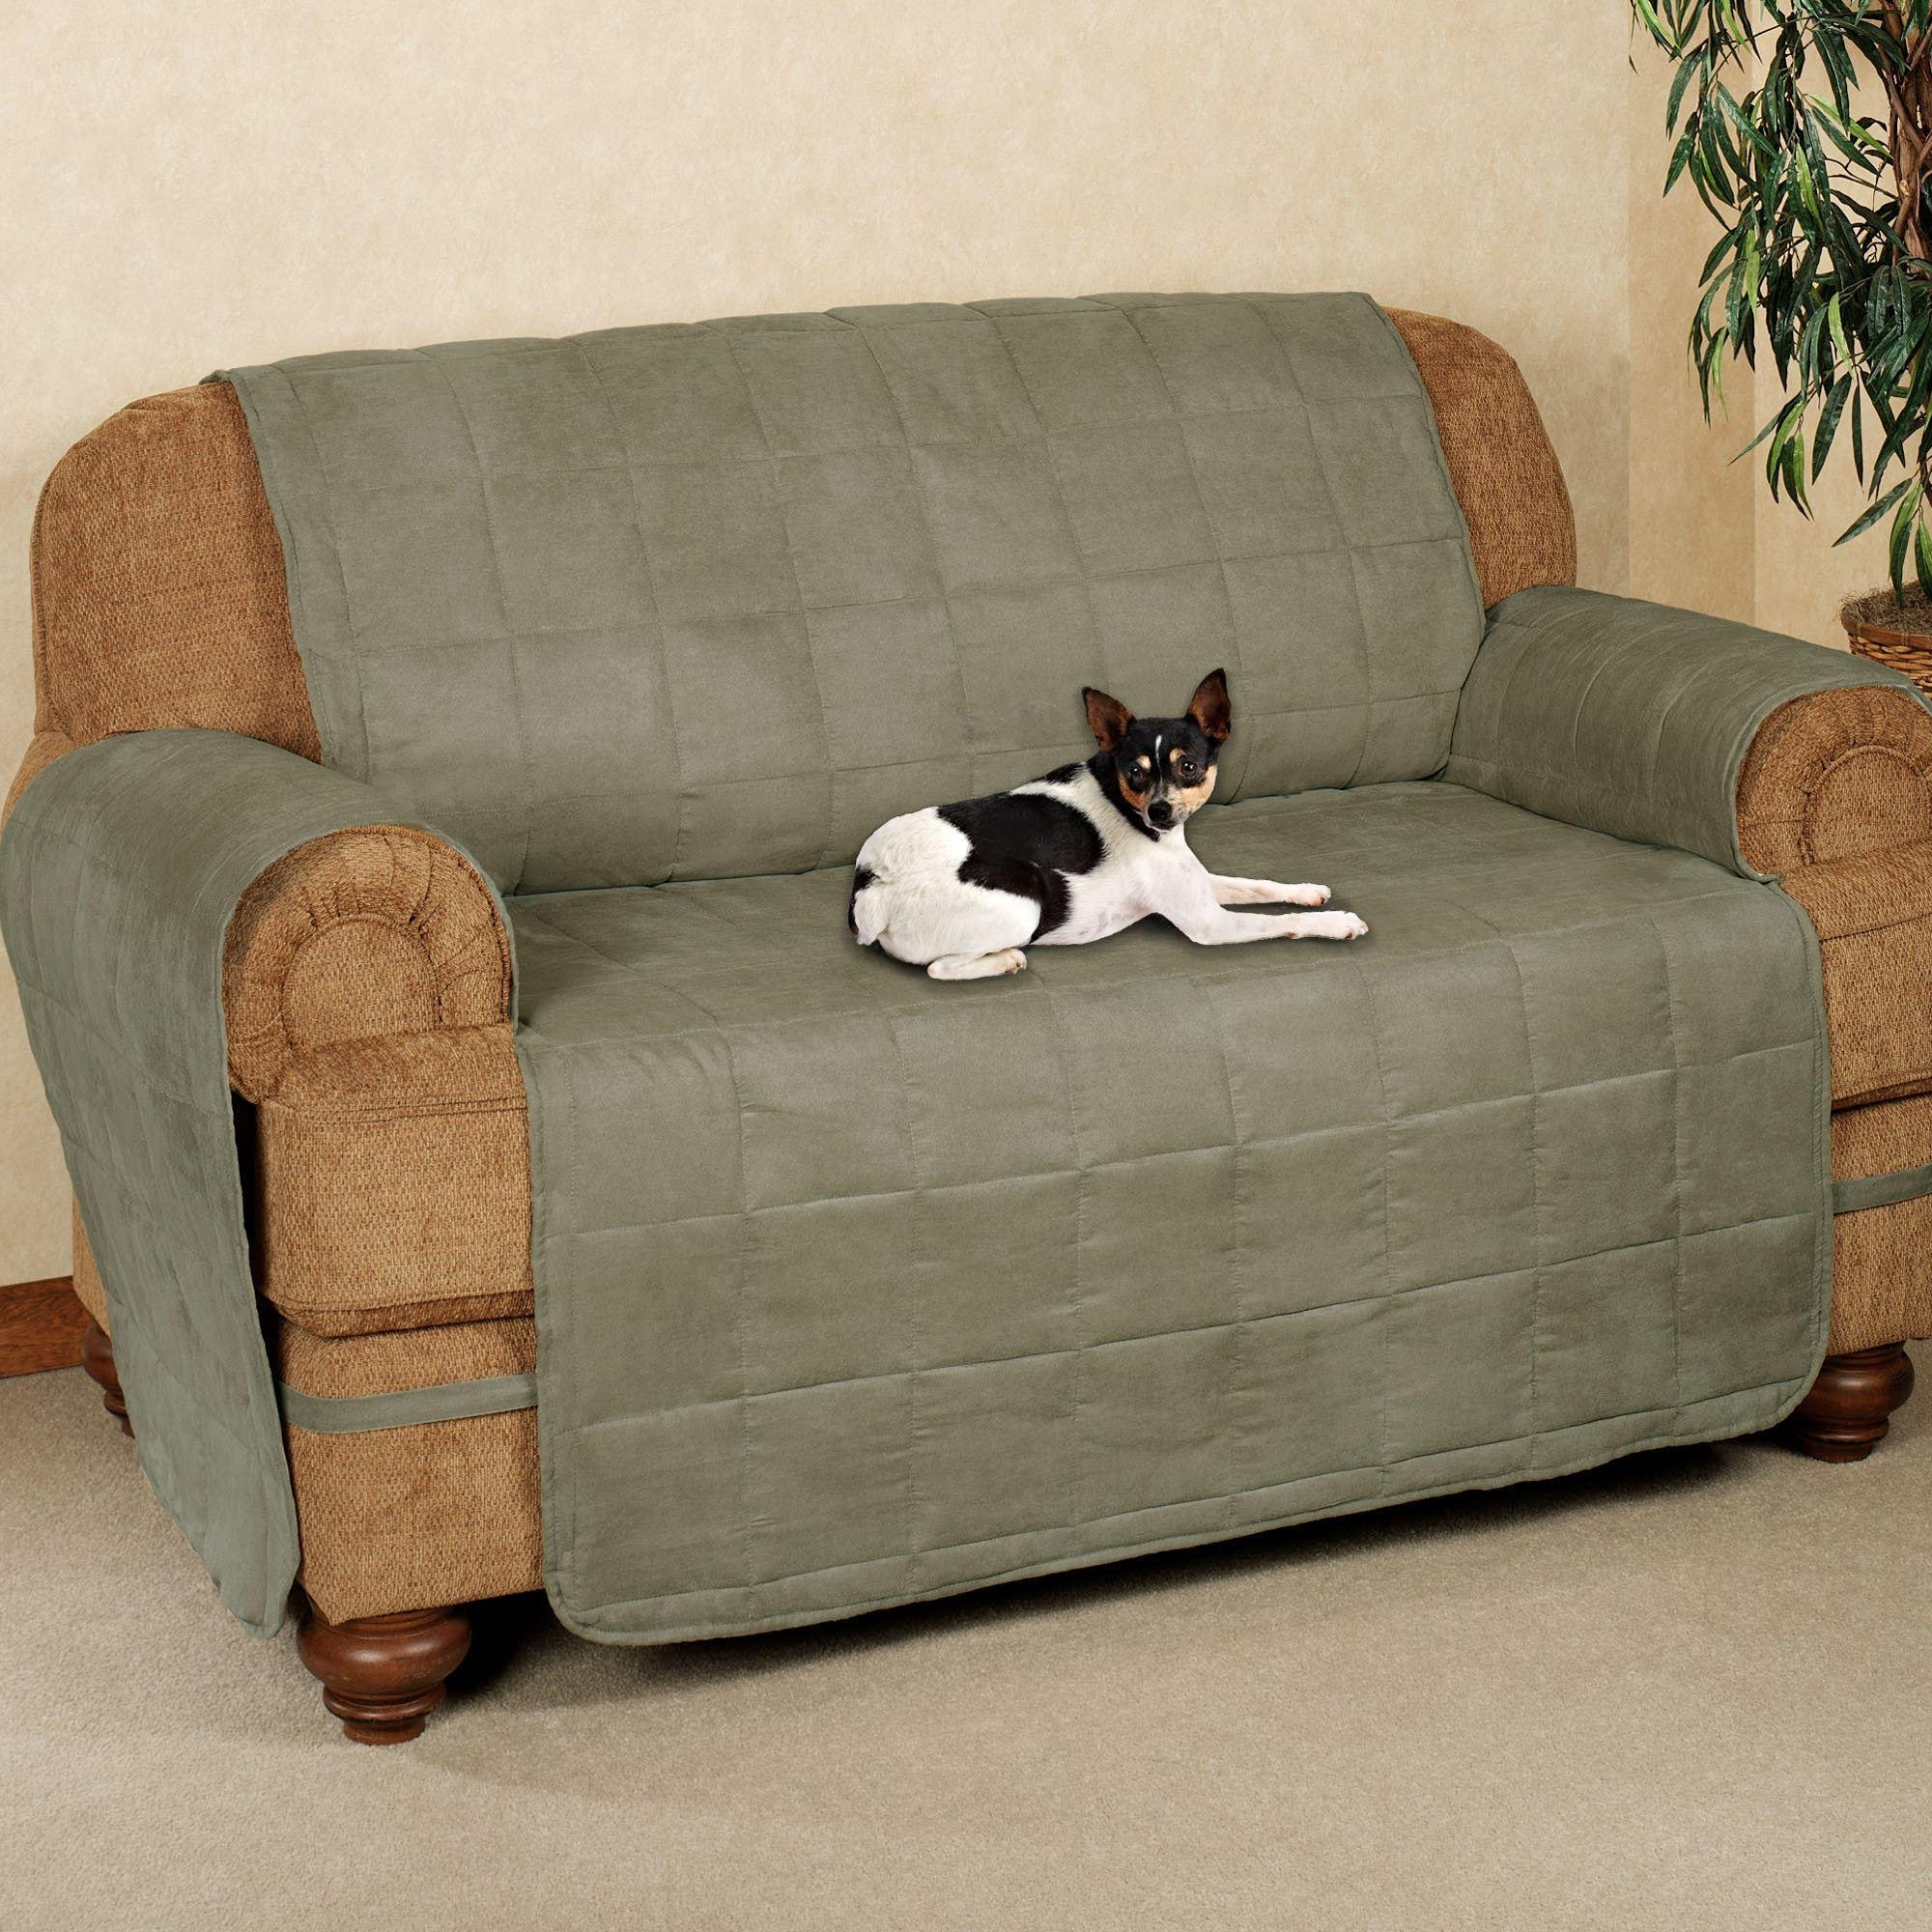 Furniture: Update Your Living Room With Best Sofa Slipcover Design Intended For Washable Sofas (Image 4 of 20)